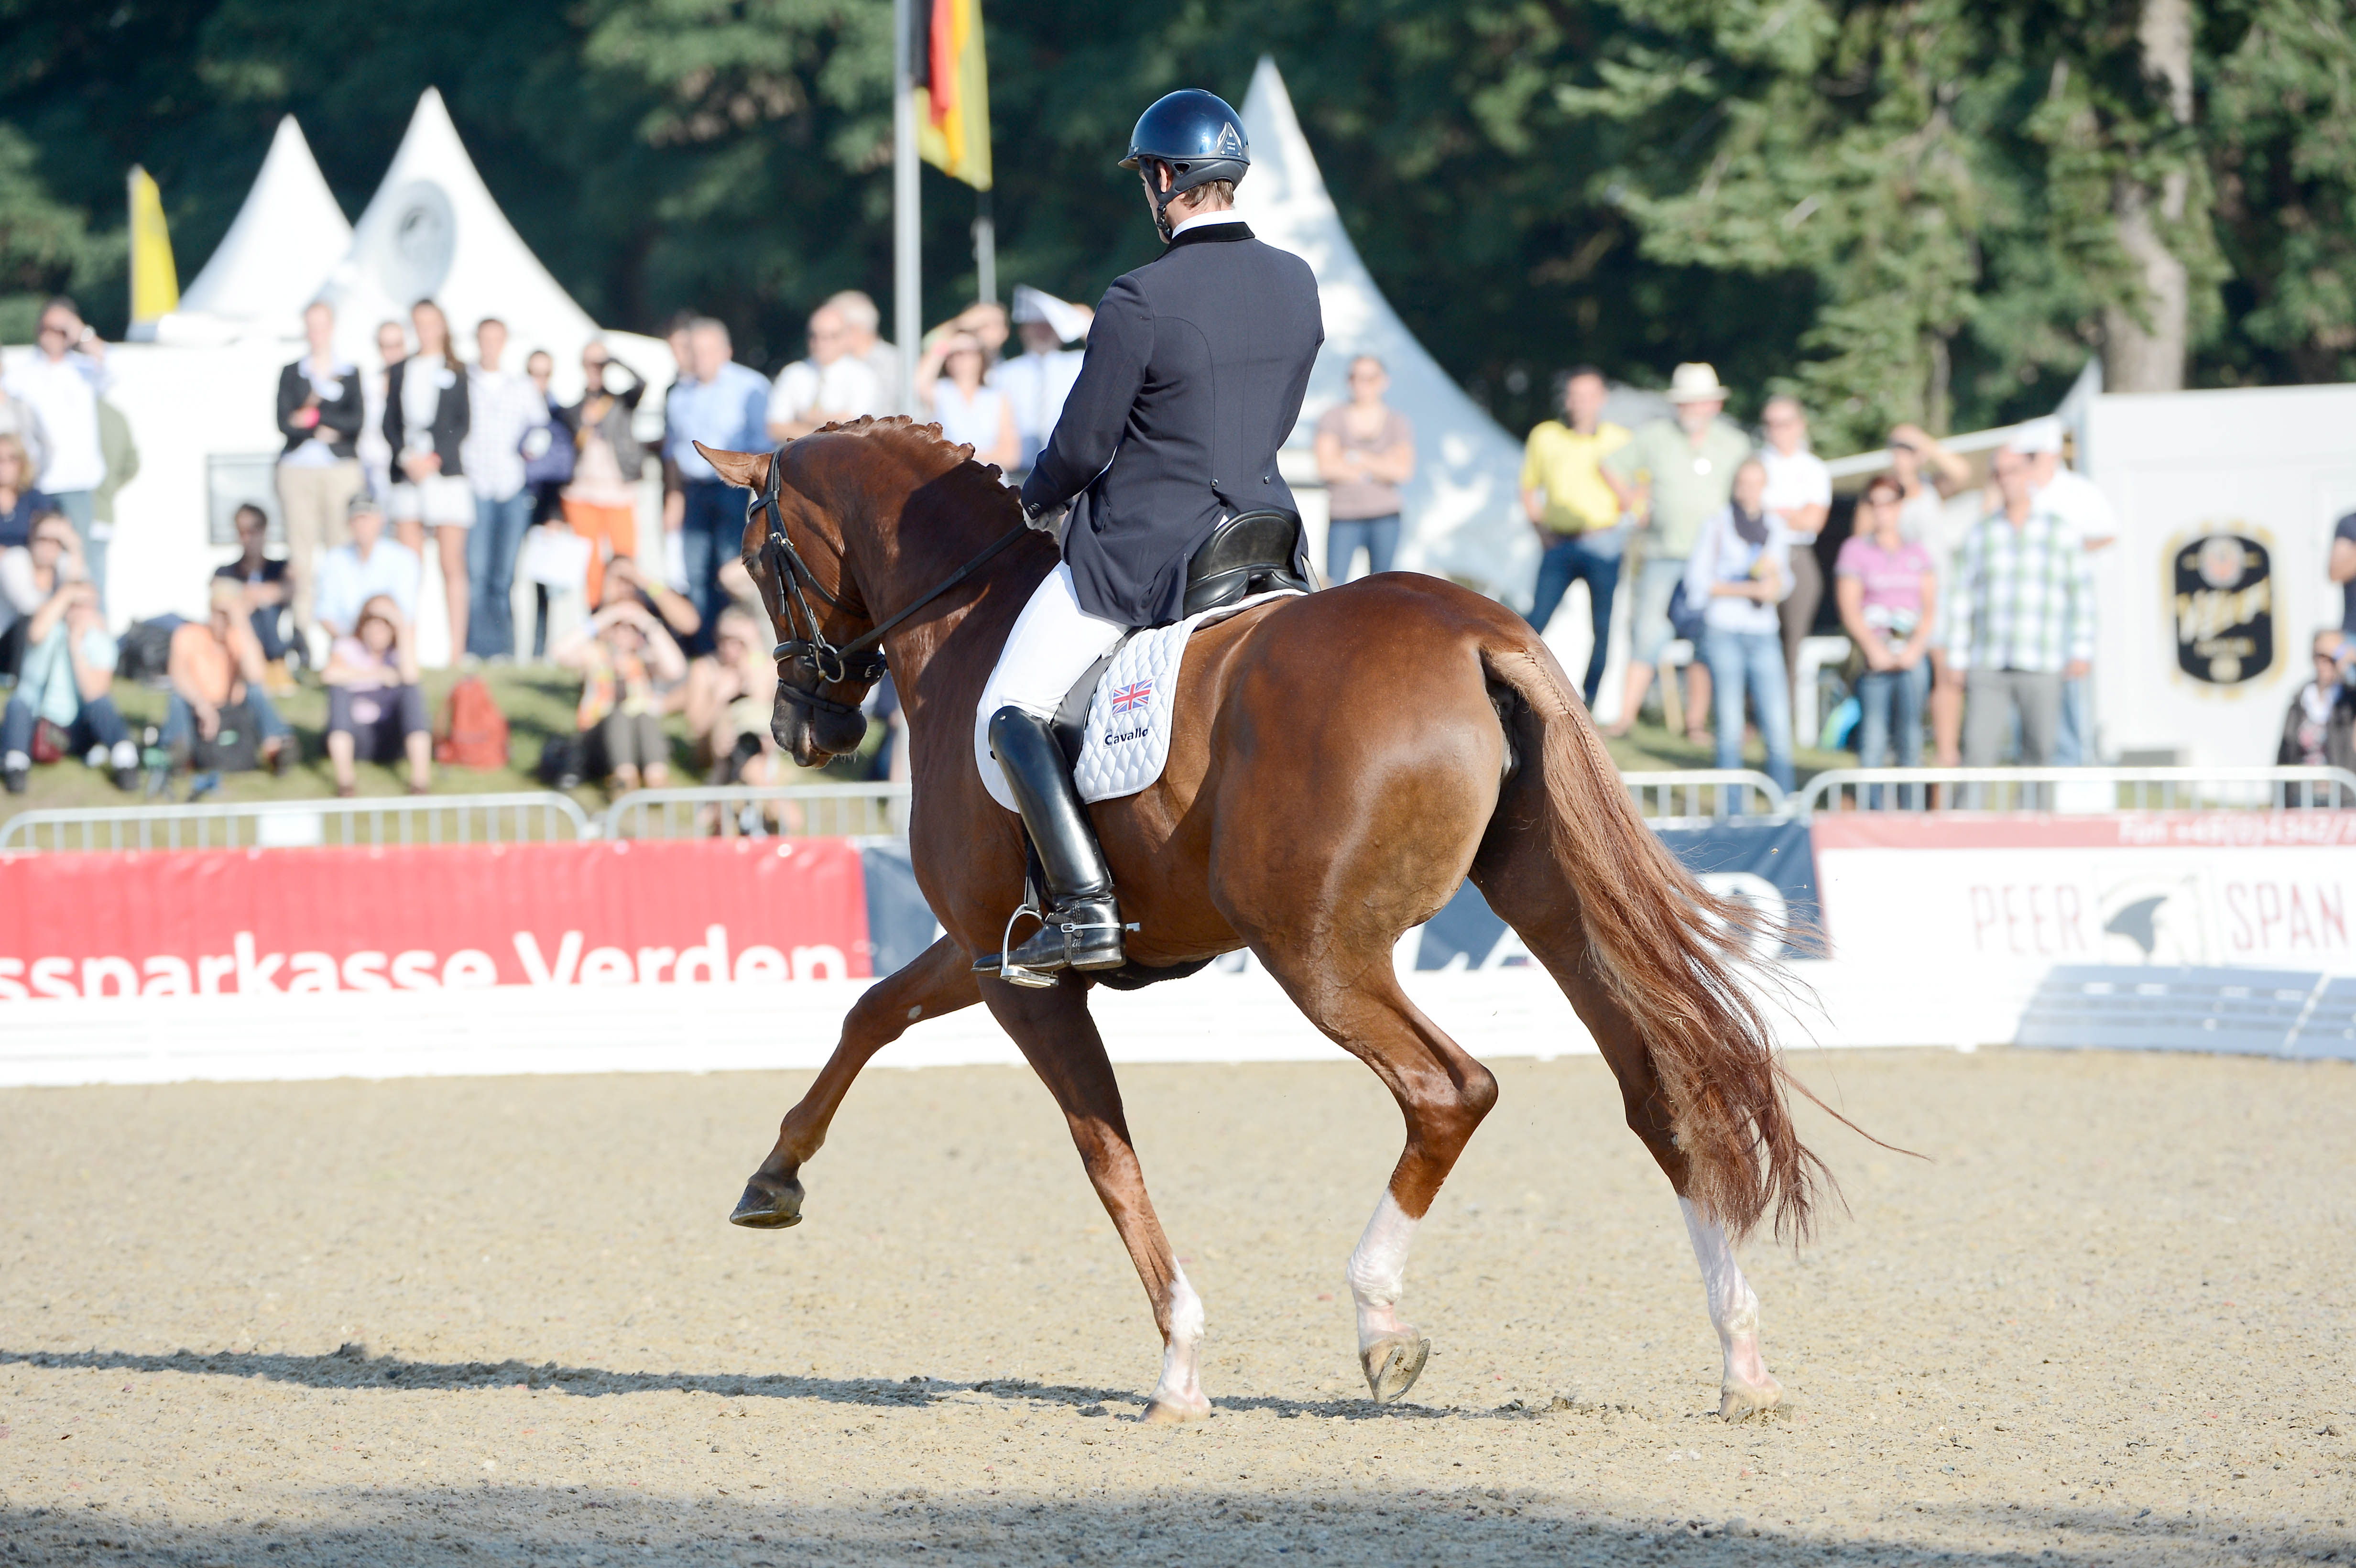 Horse Times Egypt: Equestrian Magazine :News :INTERNATIONAL DRESSAGE AND SHOW JUMPING FESTIVAL VERDEN AND WORLD BREEDING DRESSAGE CHAMPIONSHIPS FOR YOUNG HORSES